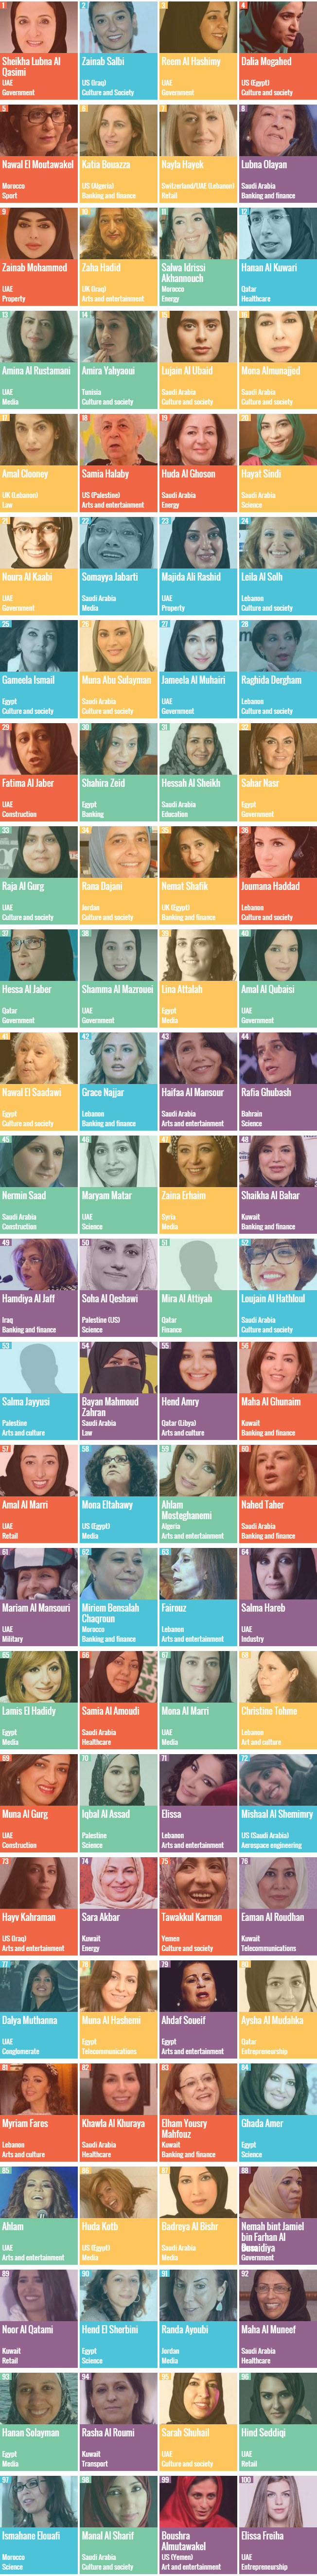 The 100 Most Powerful Arab Women 2016